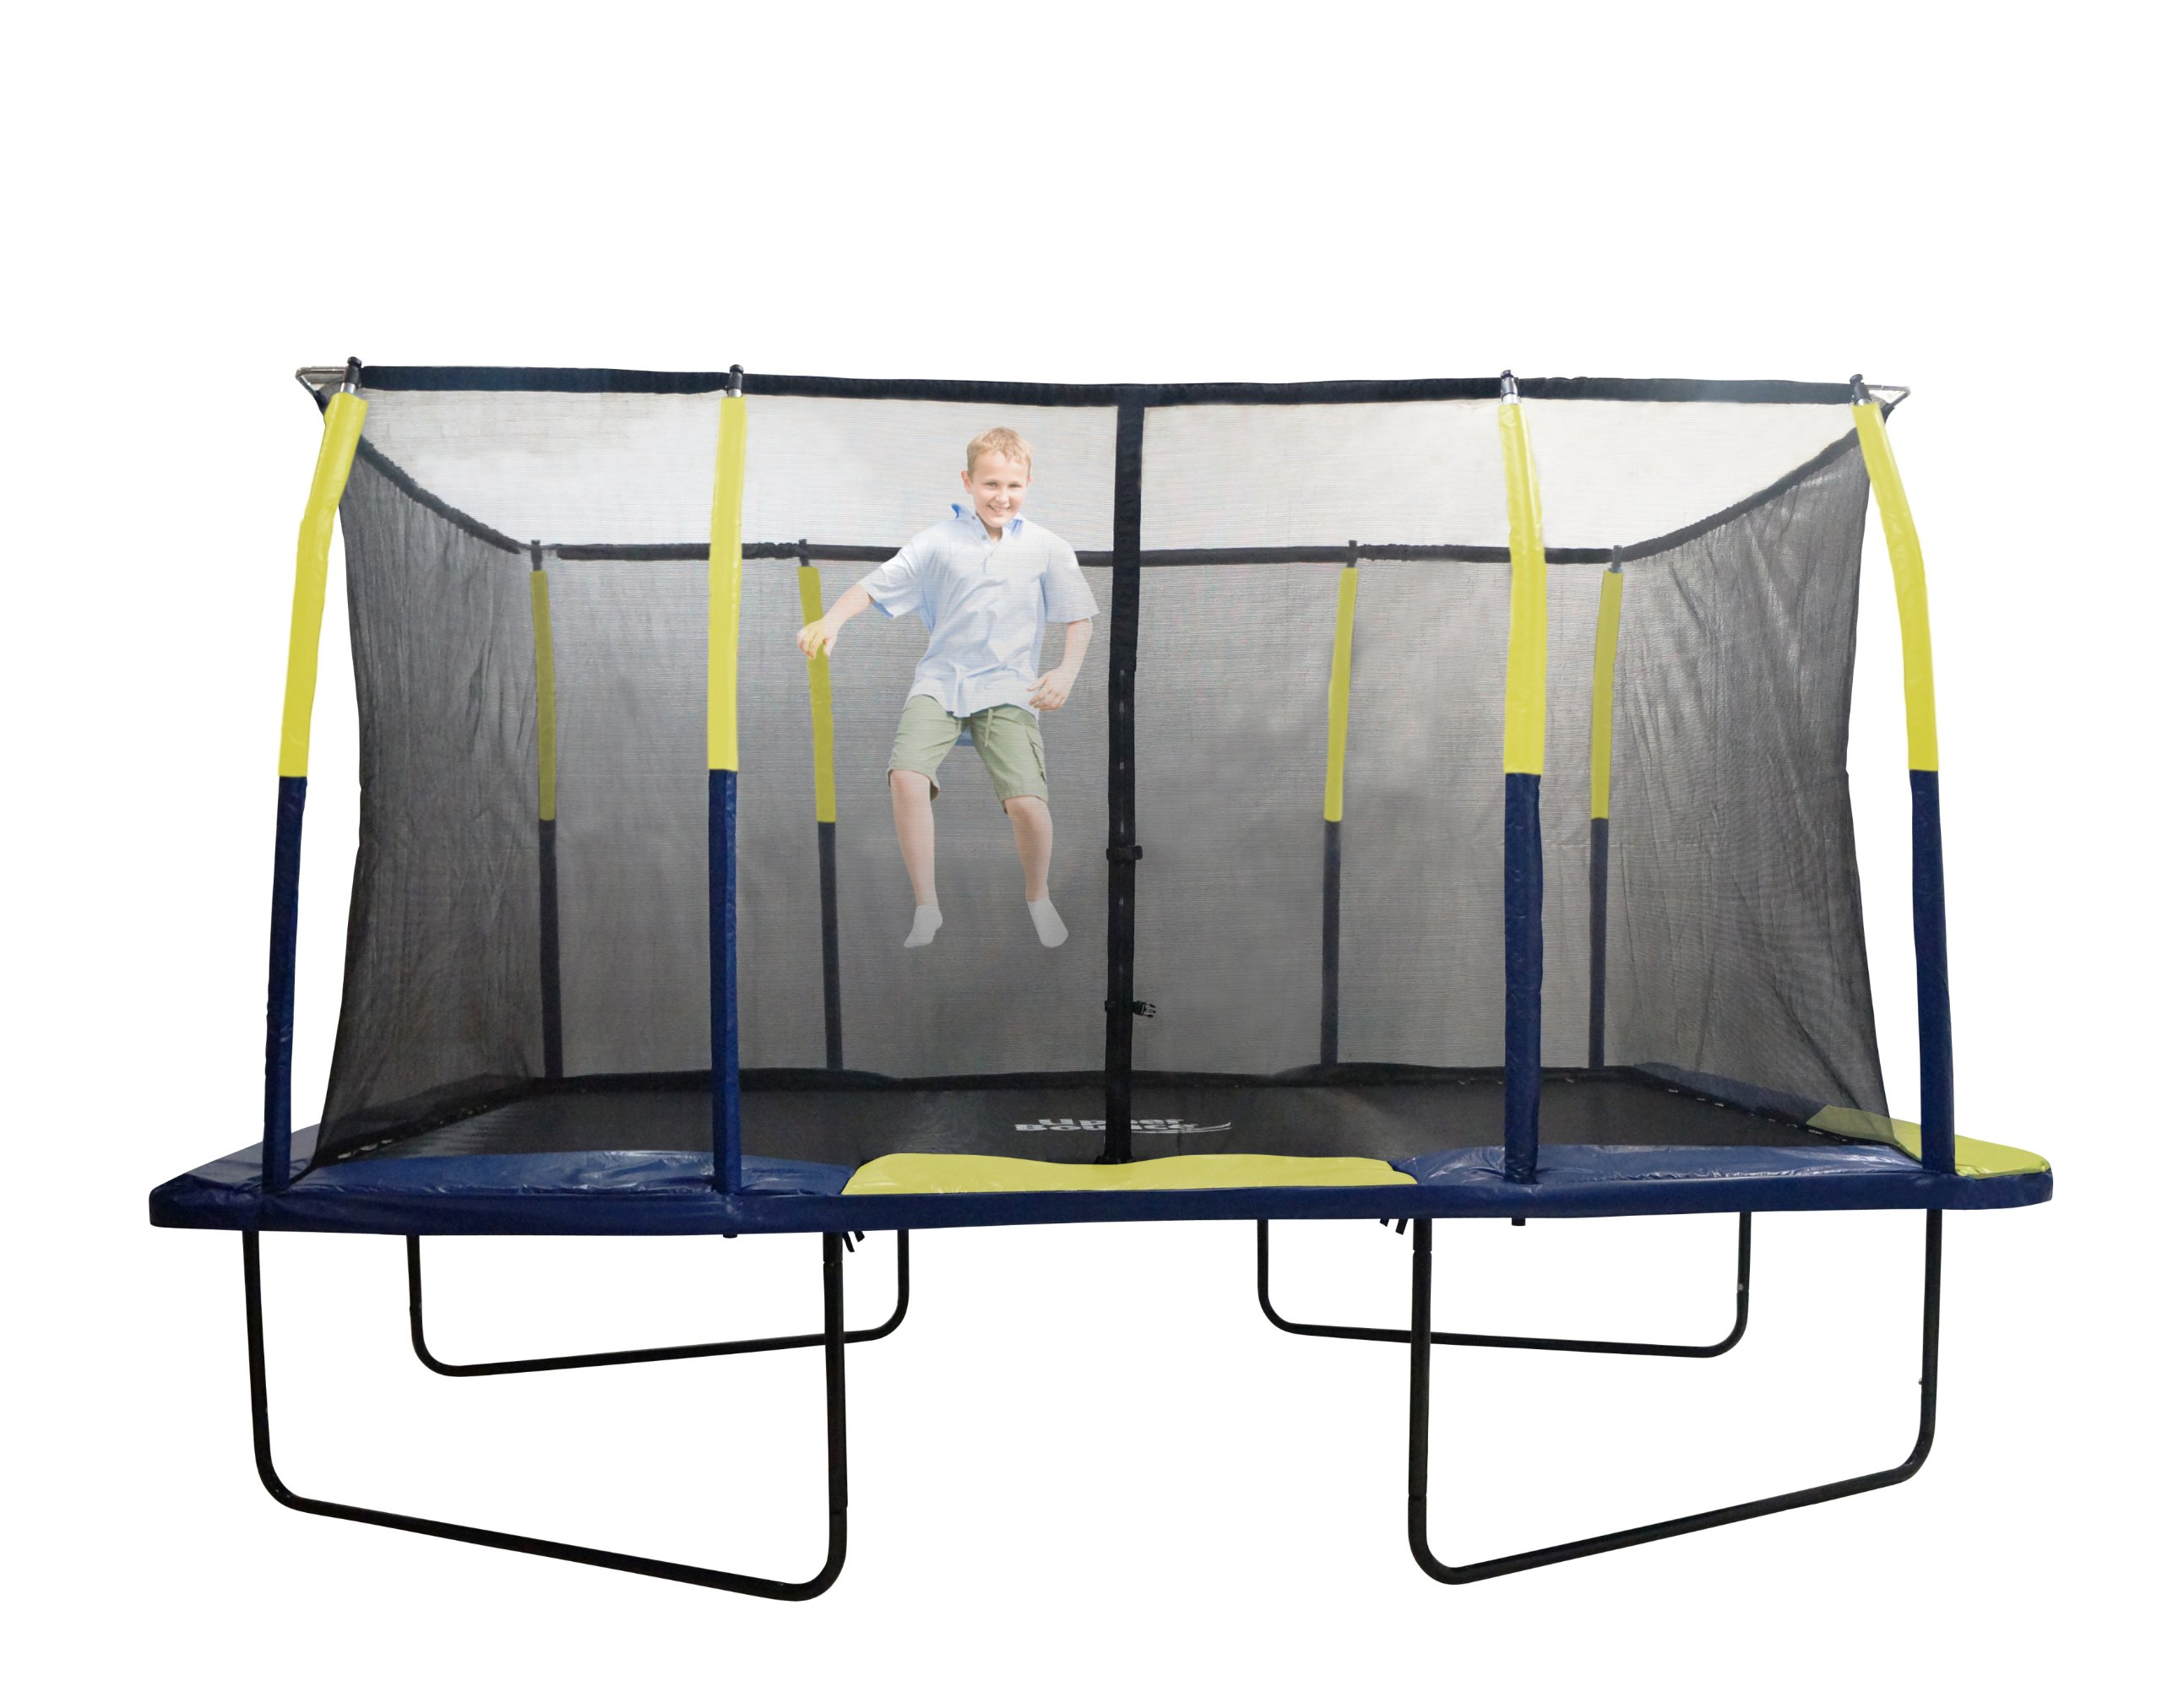 Upper Bounce Easy Assemble Spacious Rectangular Trampoline with Fiber Flex Enclosure Feature, 9 x 15-Feet by Upper Bounce (Image #6)